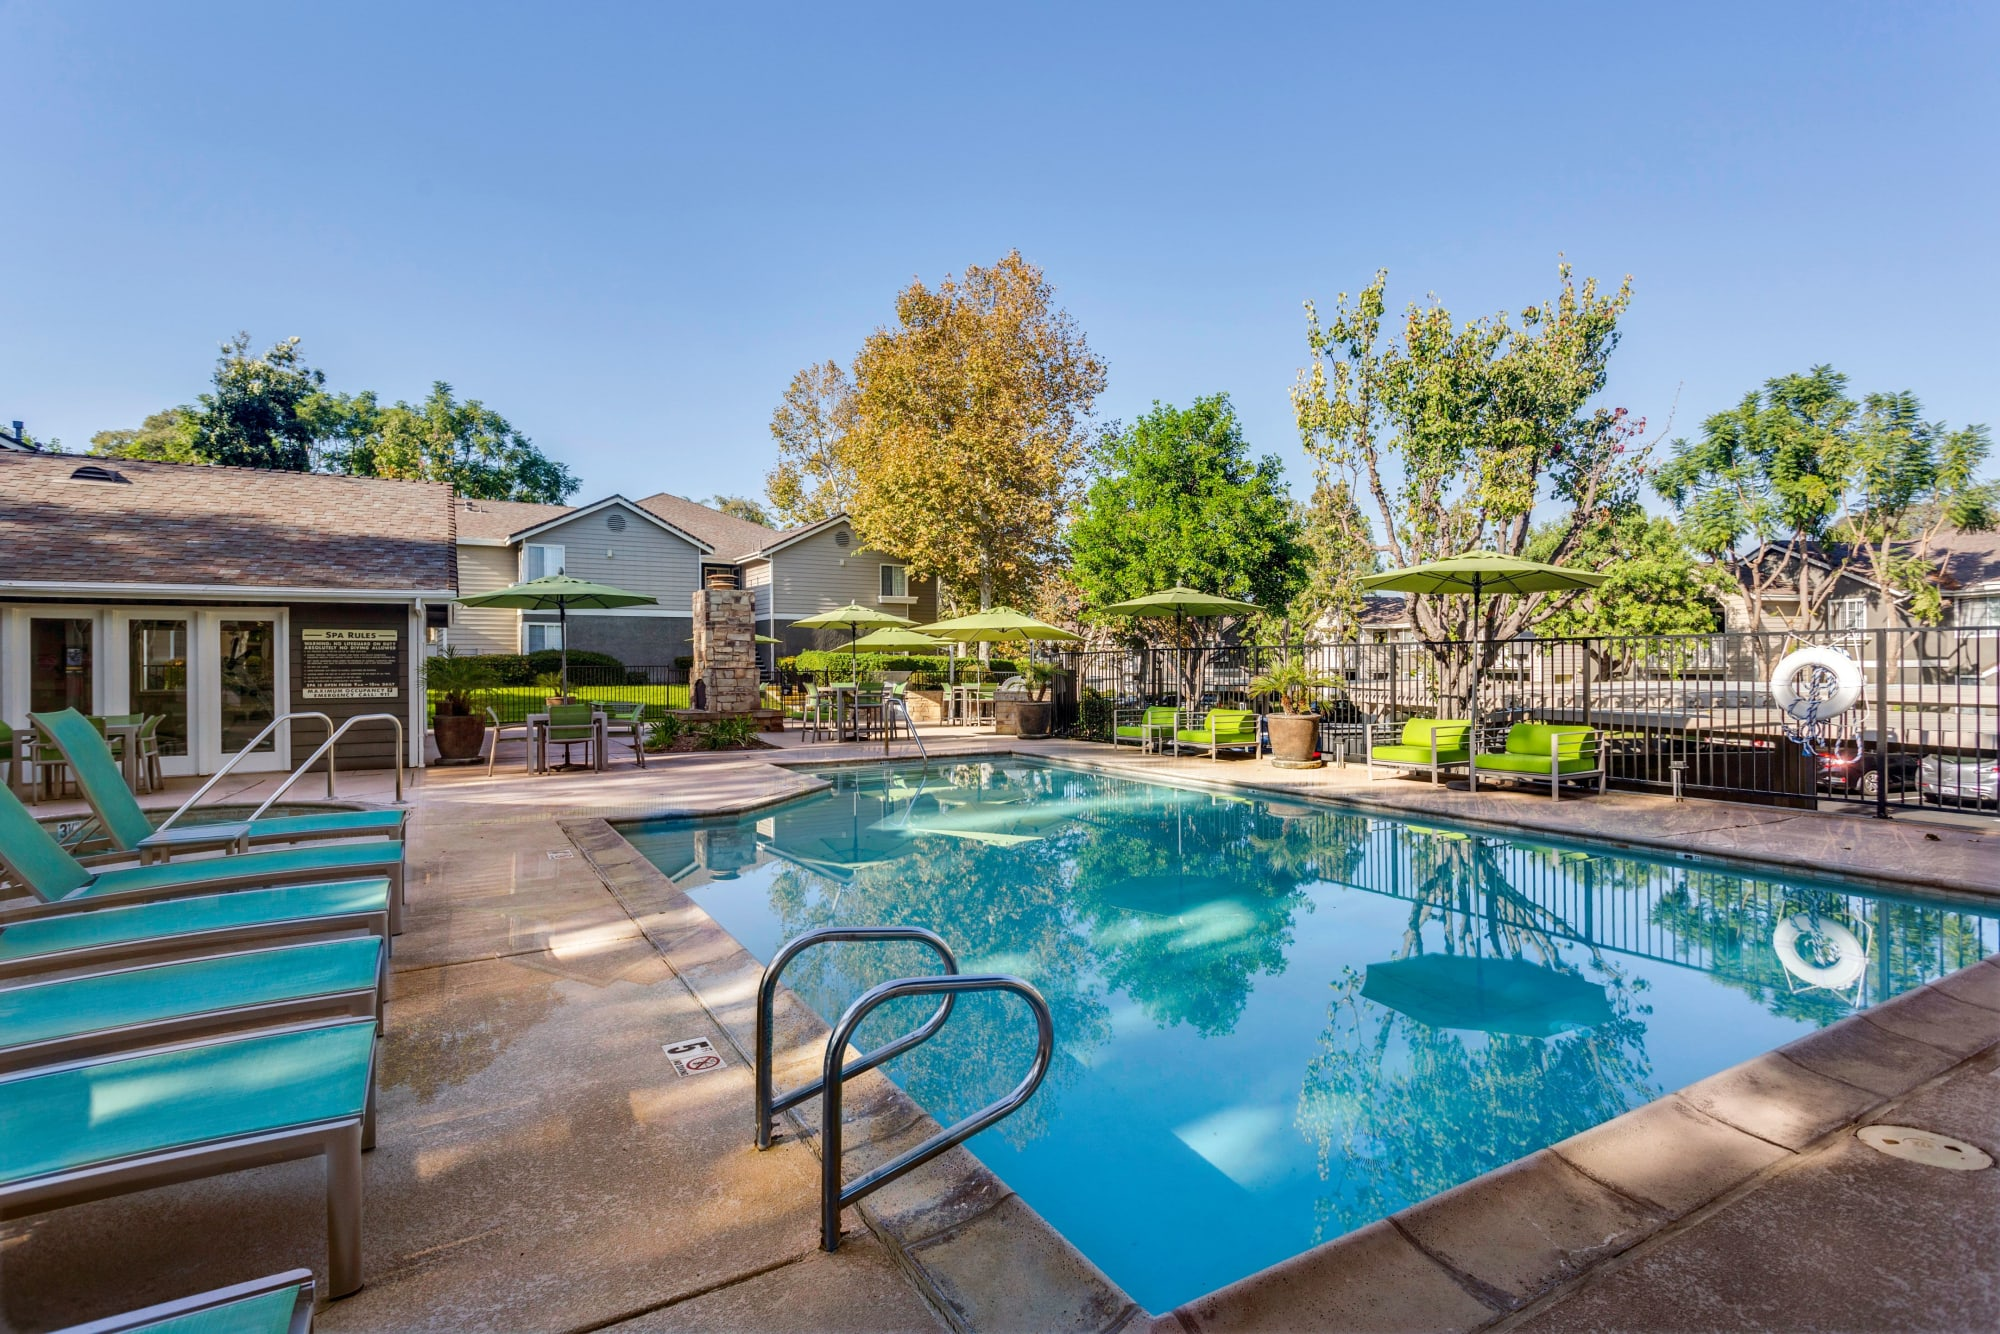 Second Pool with Fireplace, BBQ, and Ping Pong Table at Village Oaks in Chino Hills, California